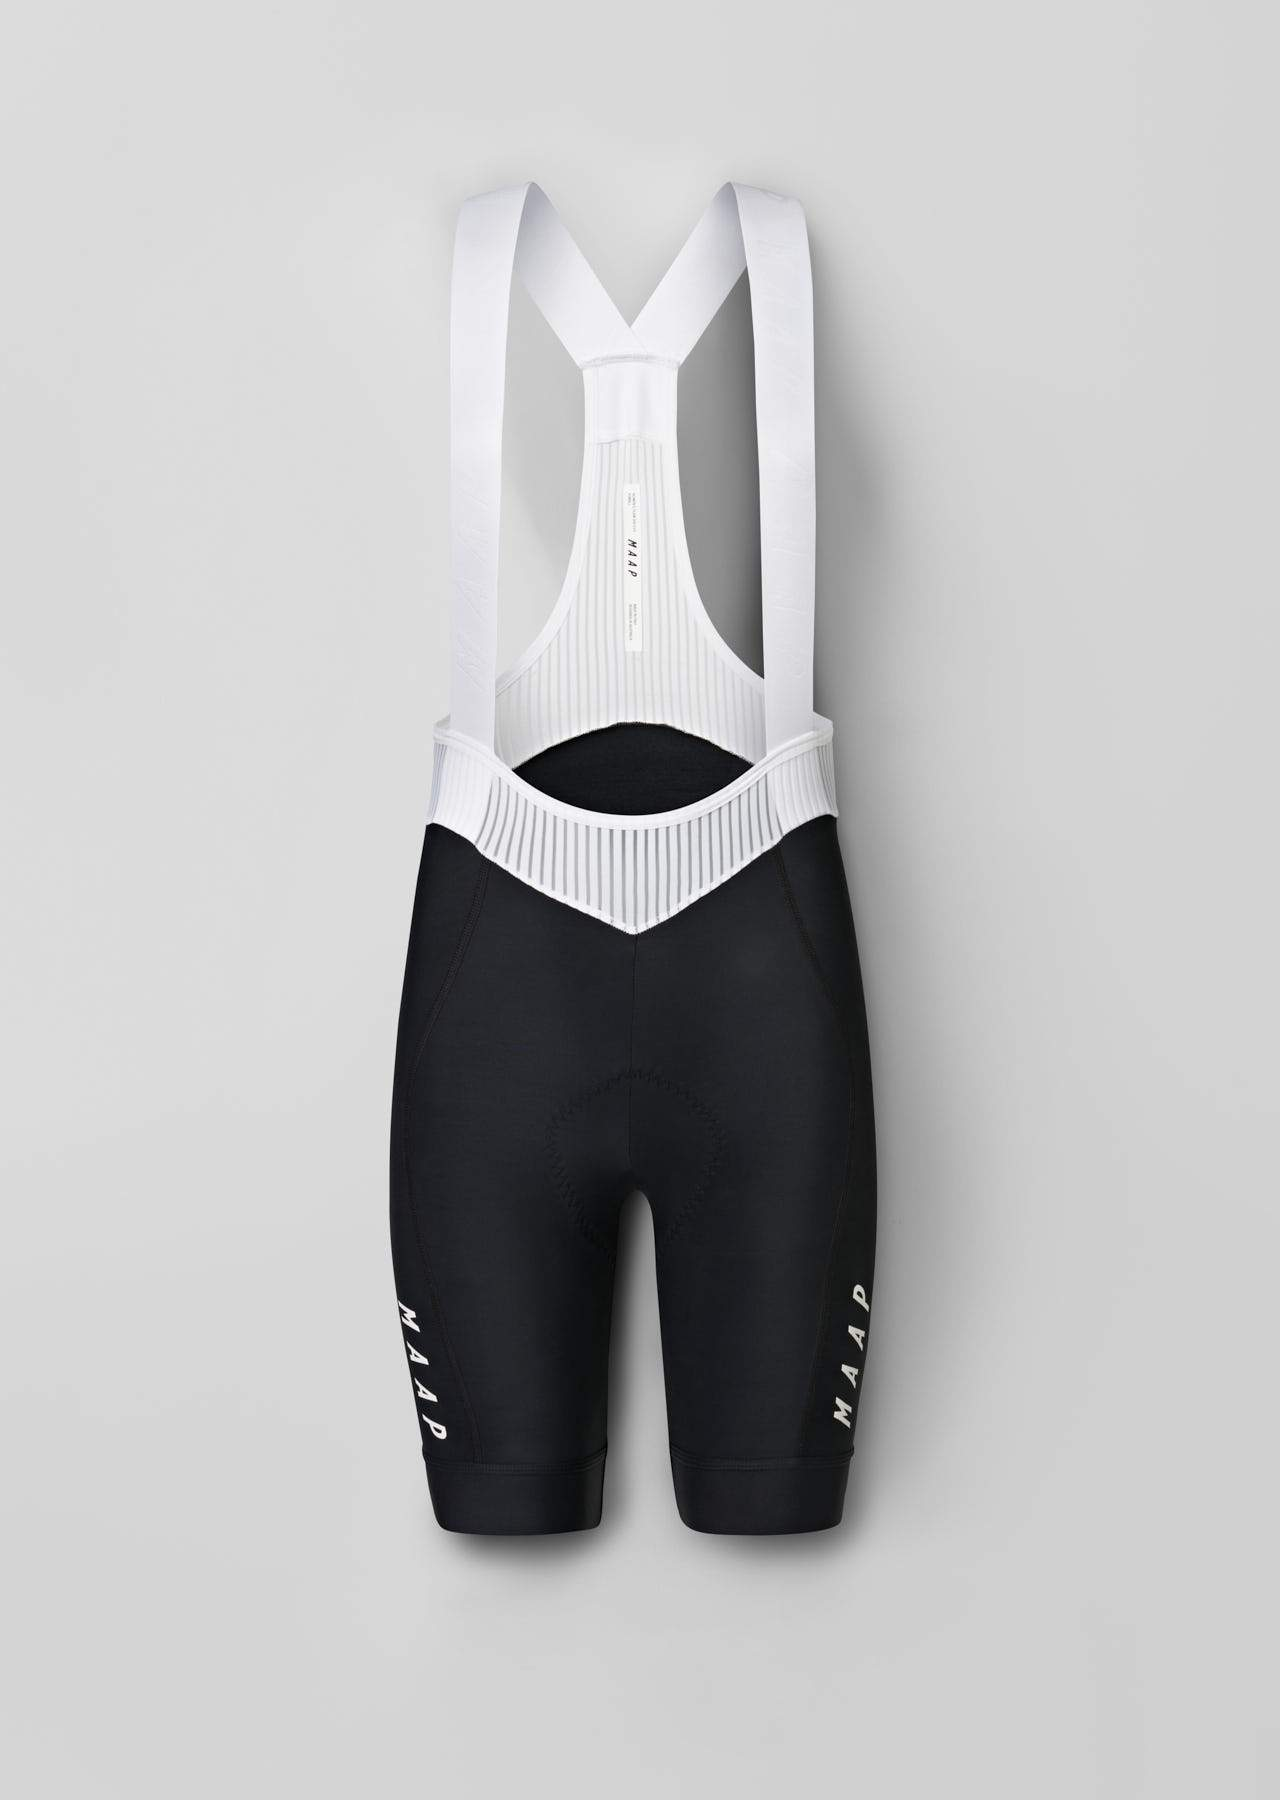 Women's Team Bib Evo